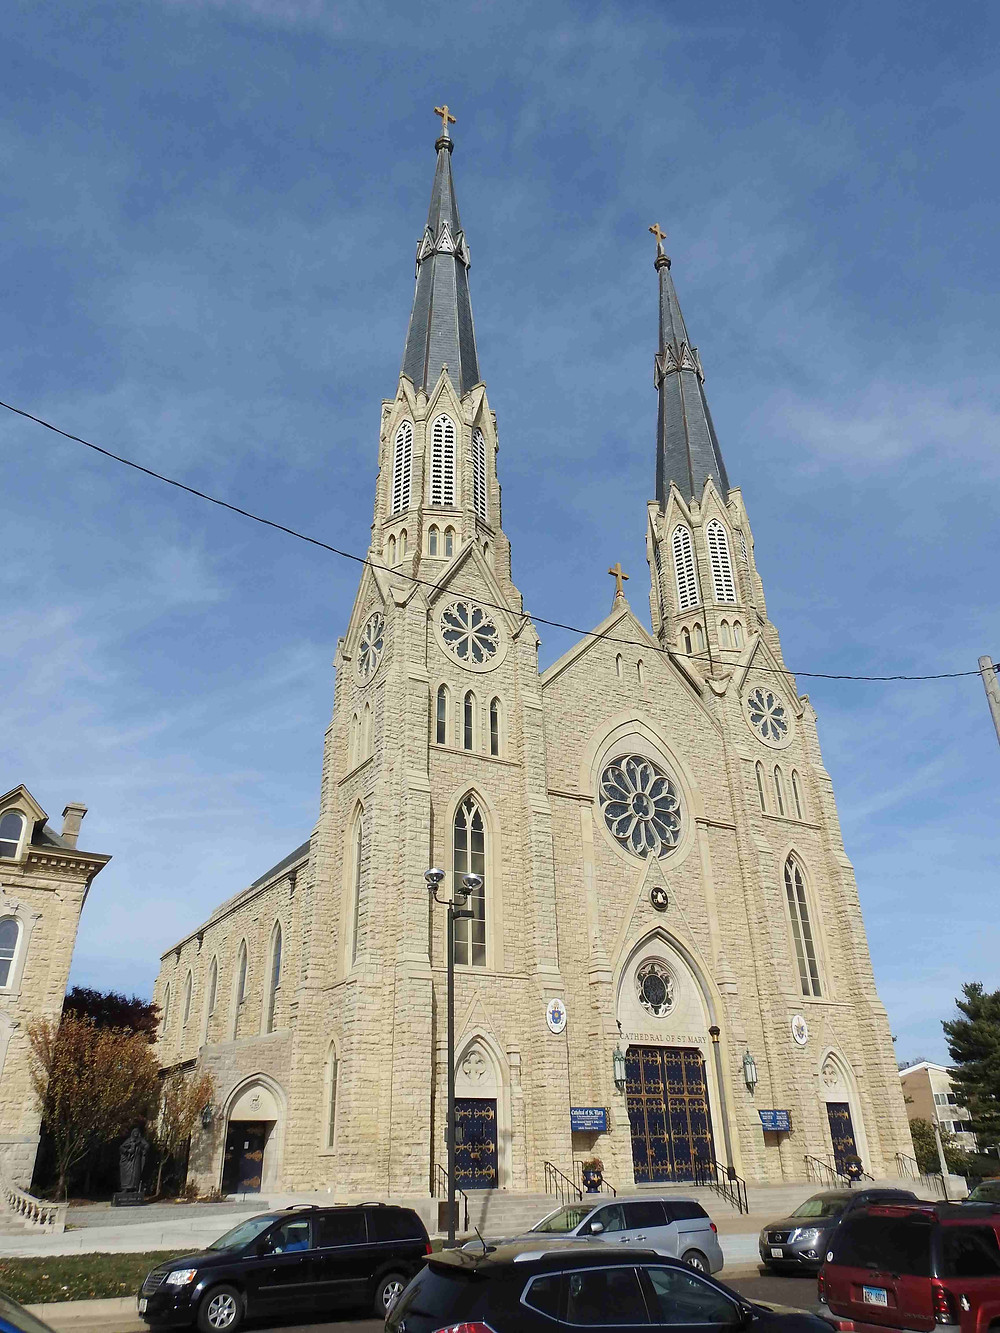 The Cathedral of Saint Mary of the Immaculate Conception in Peoria, Illinois.